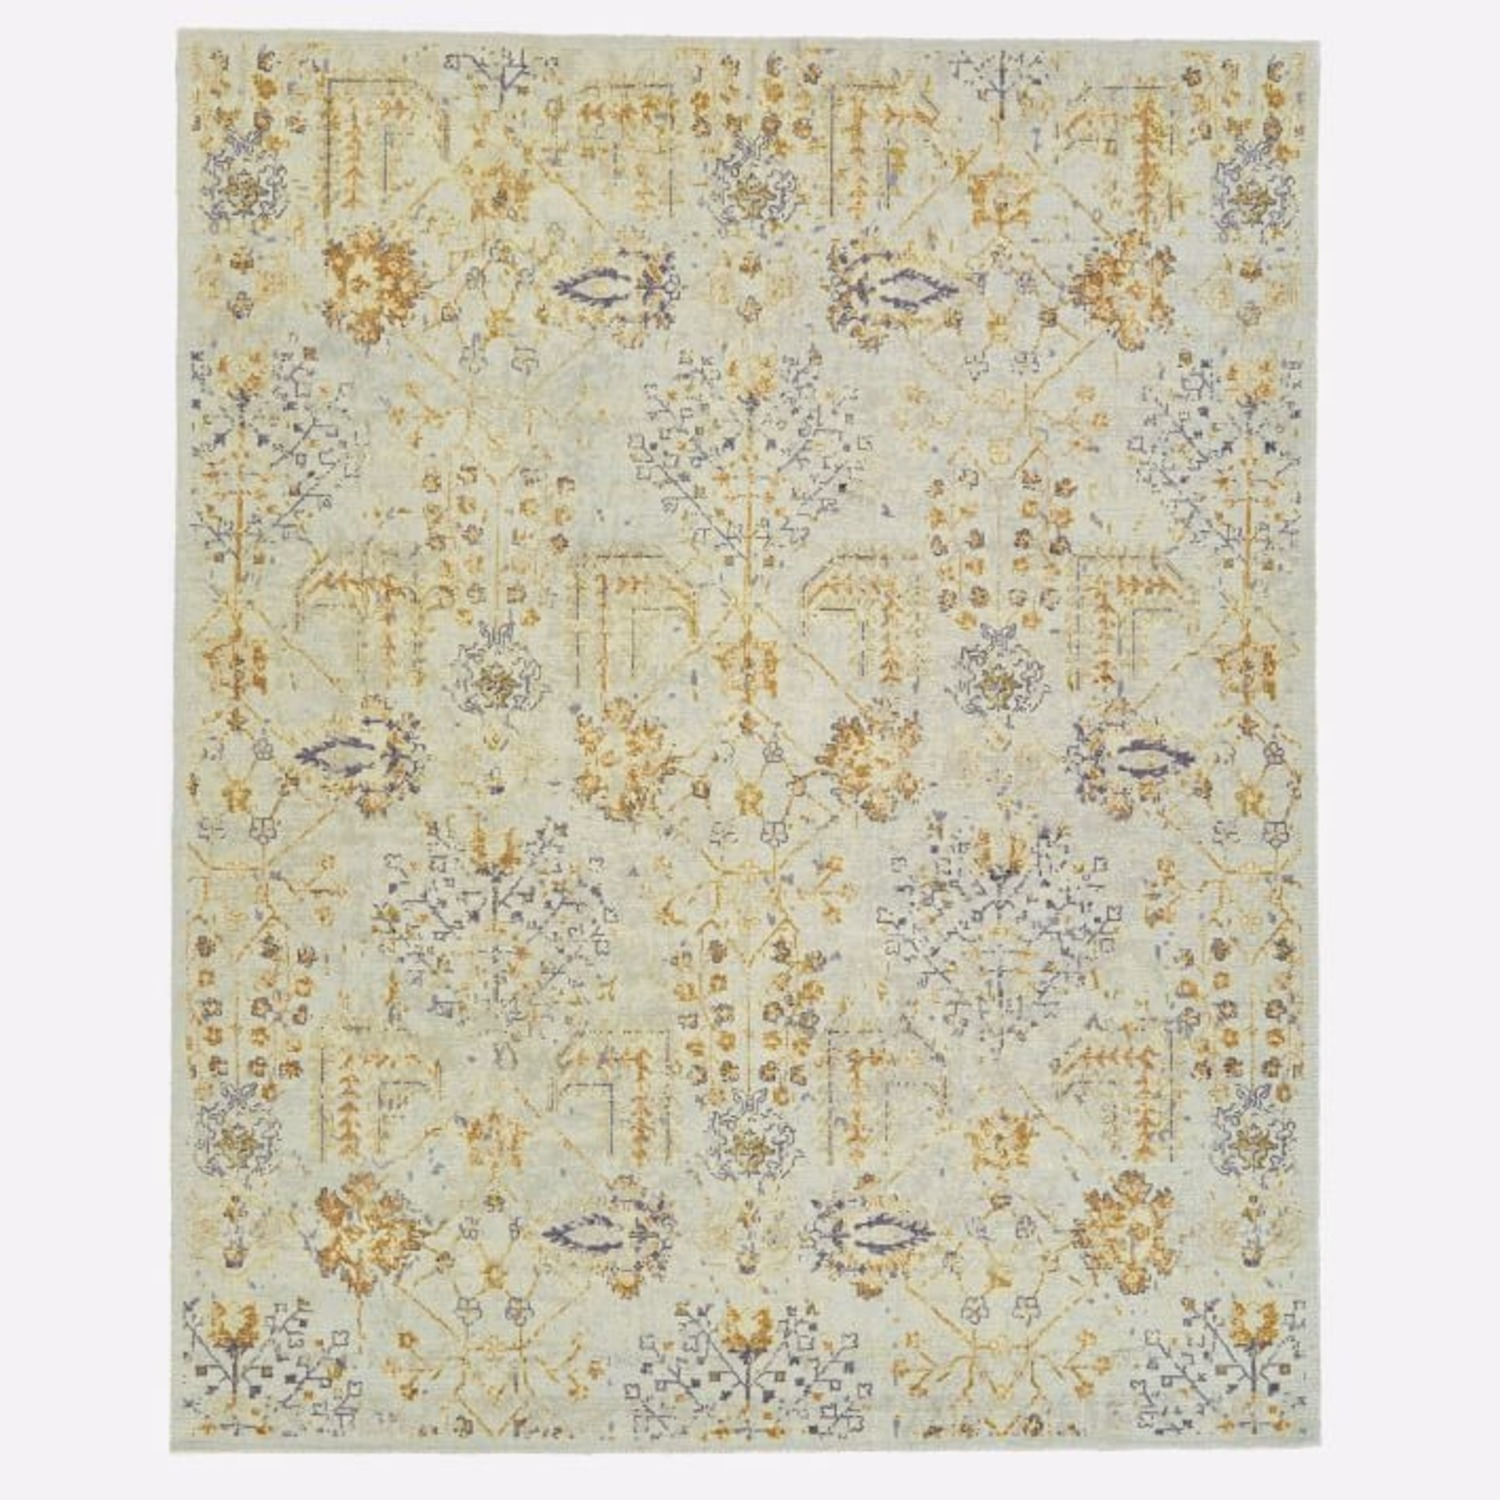 West Elm Printed Canopy Rug, Frost Gray - image-1